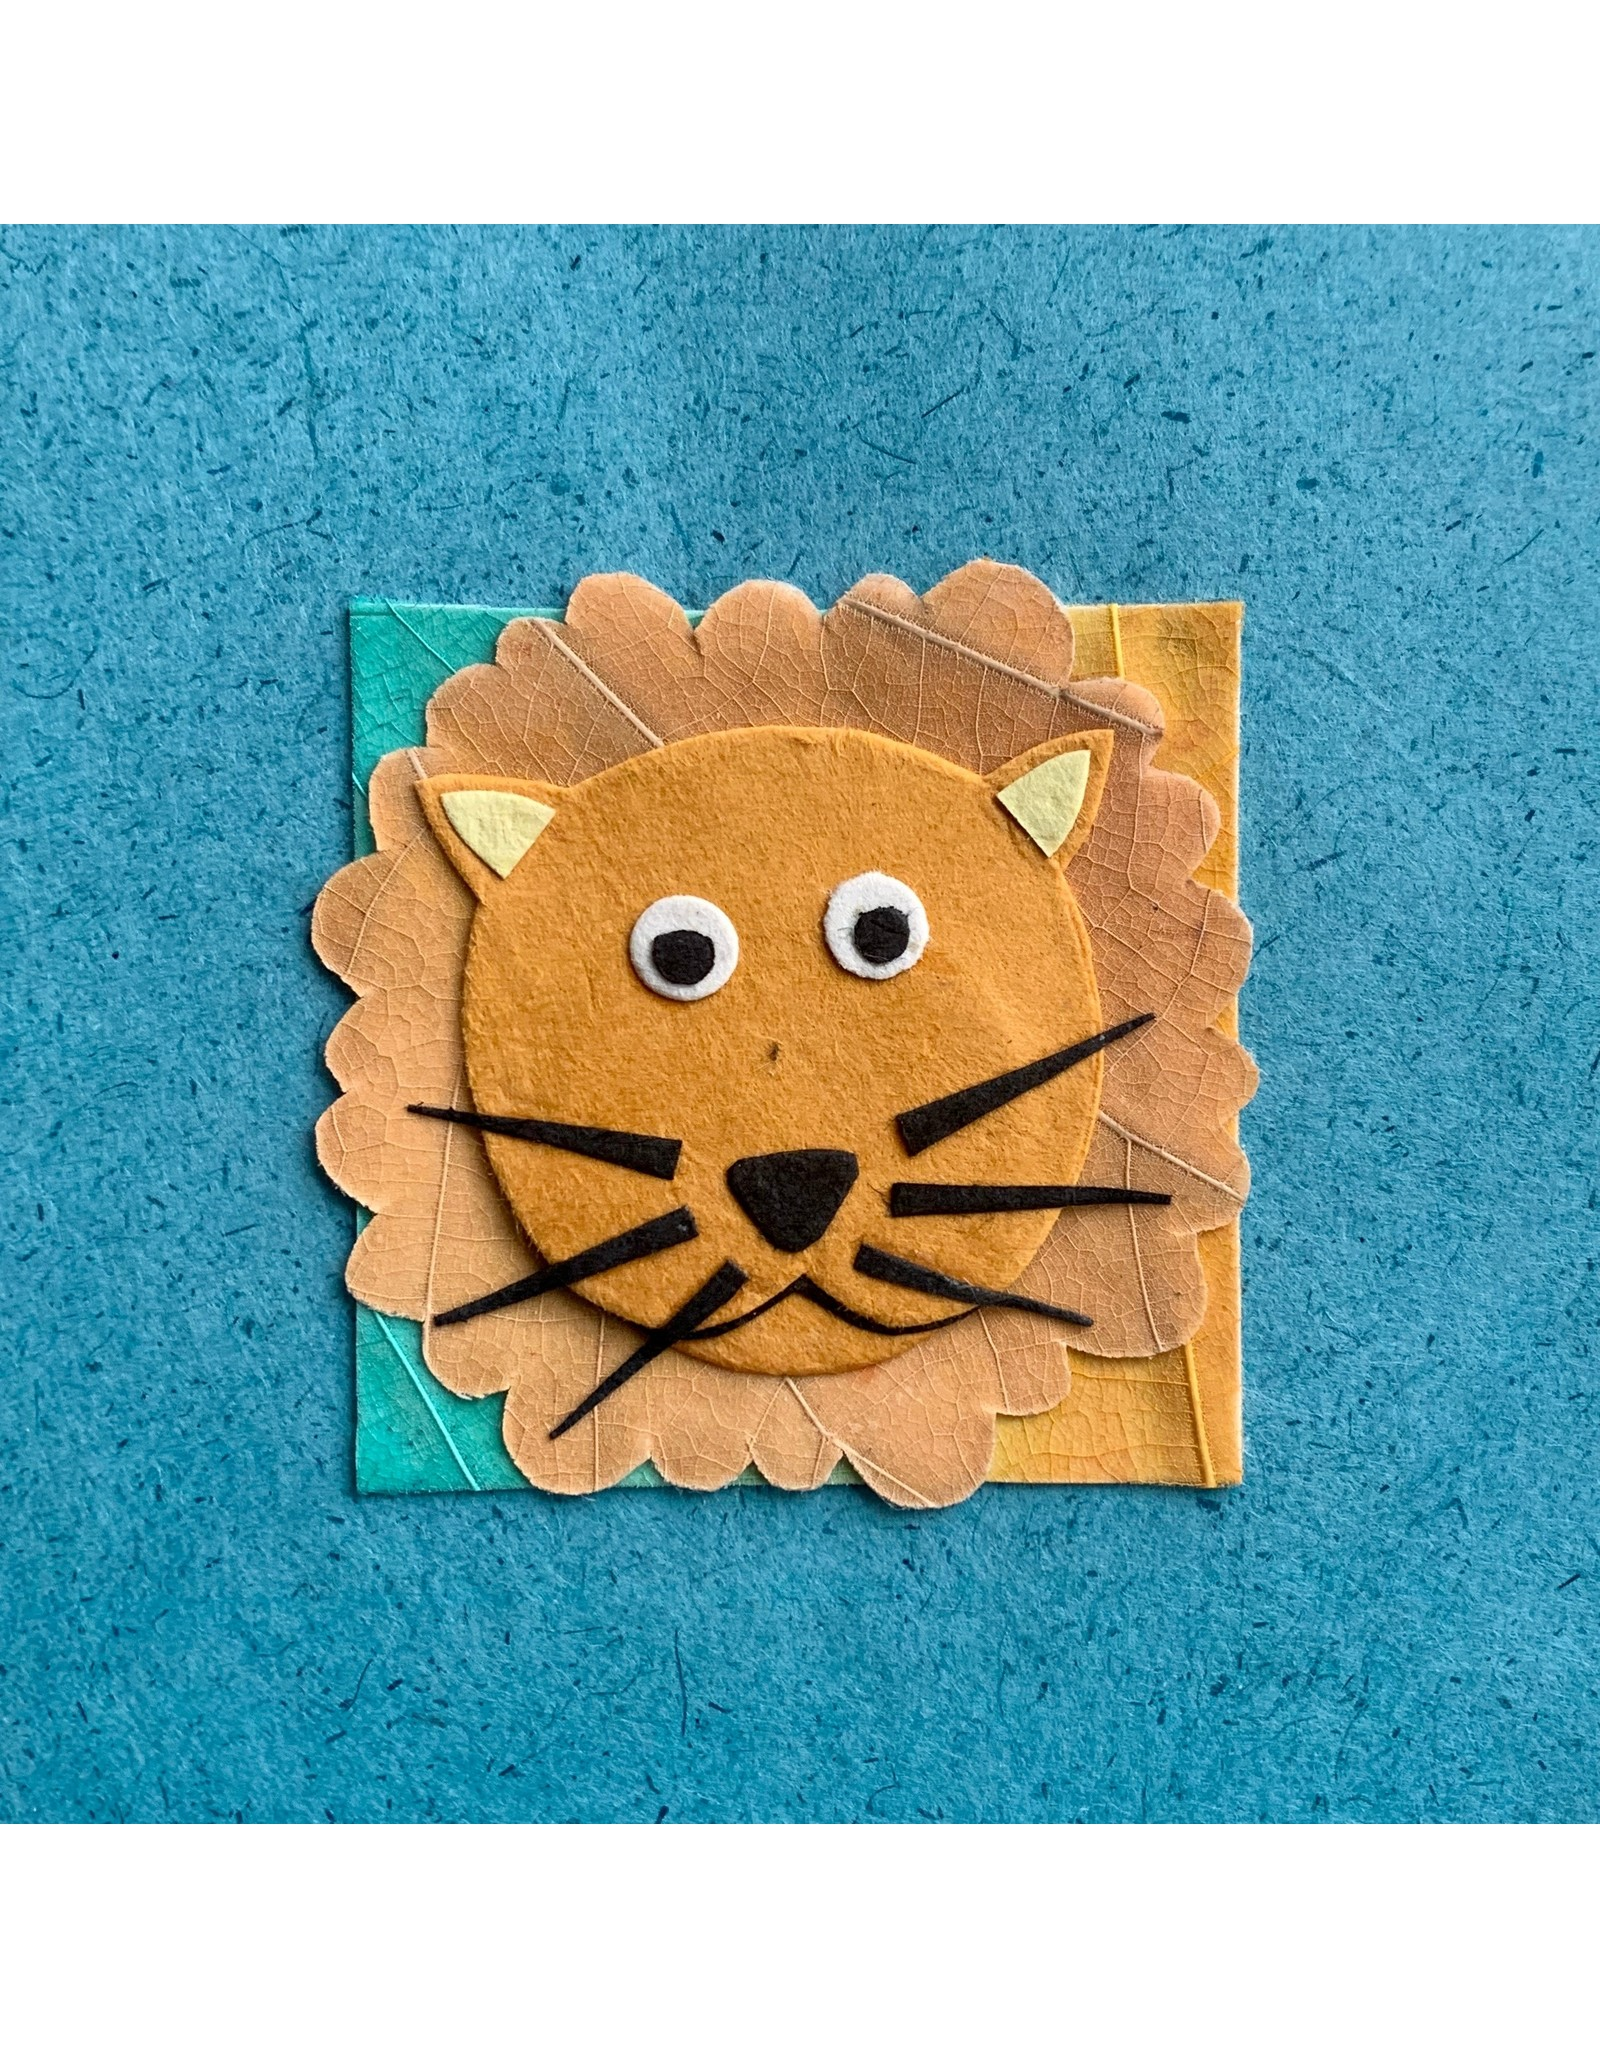 Ten Thousand Villages CLEARANCE Friendly Lion Greeting Card, Philippines